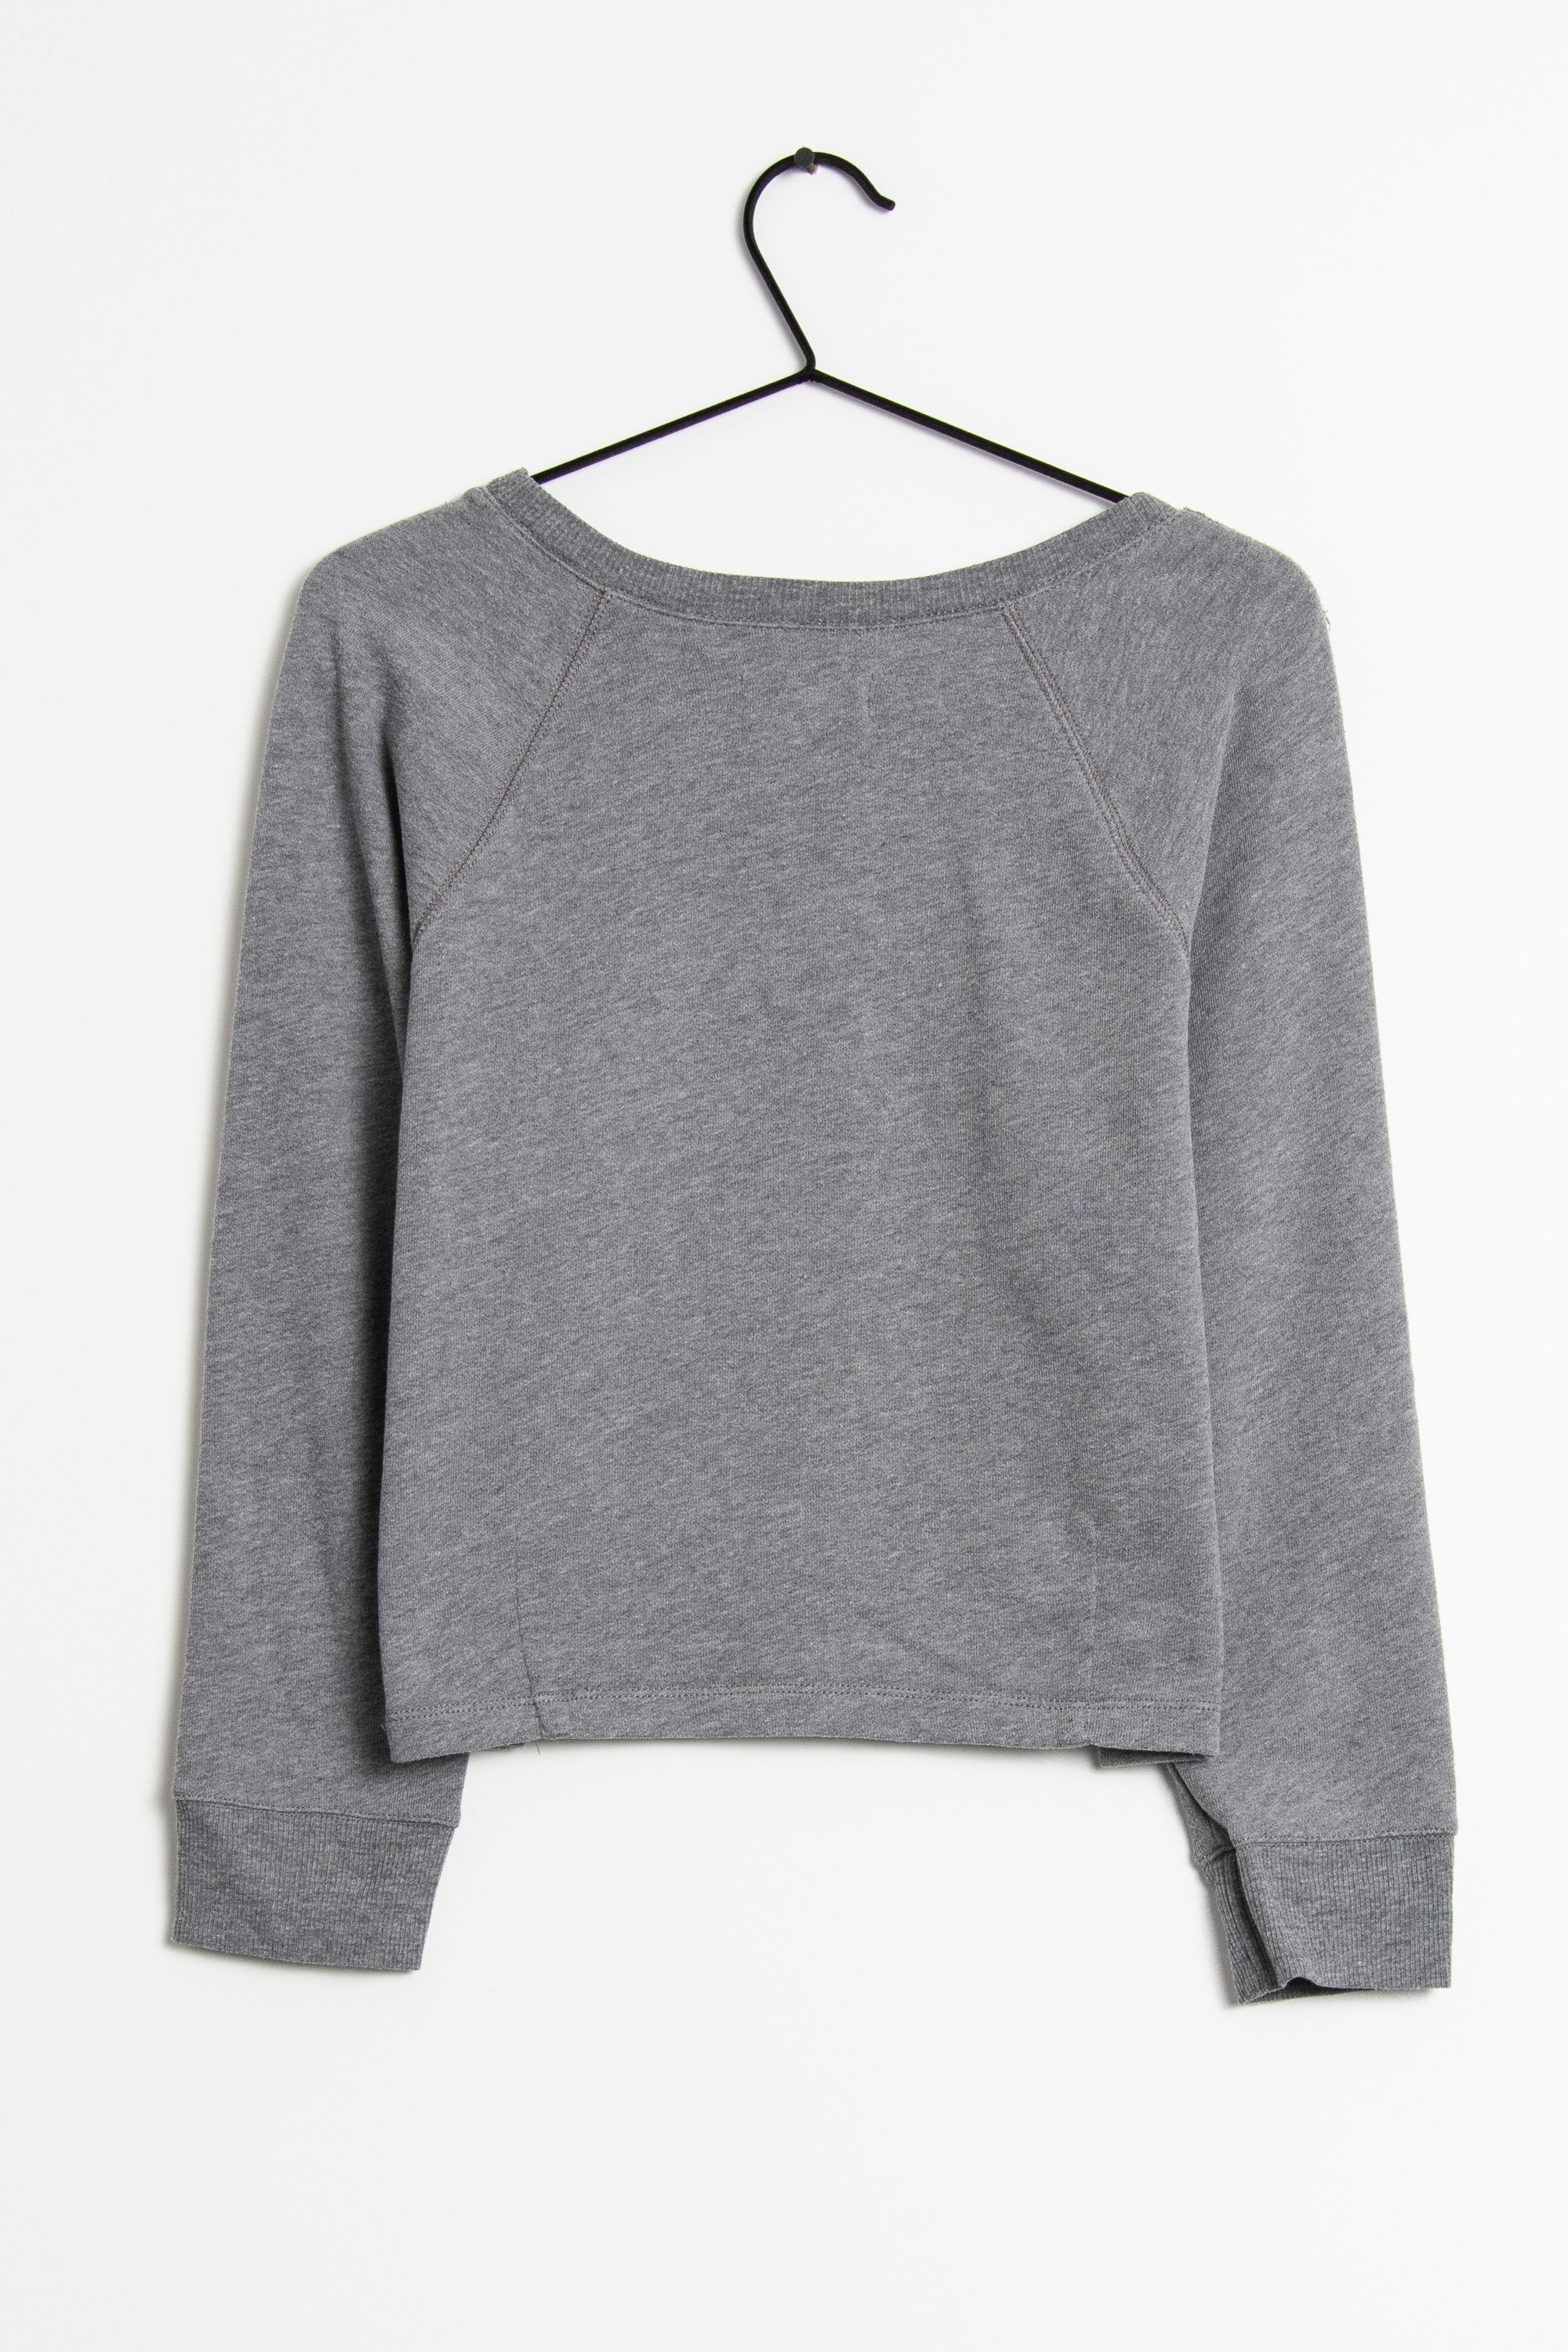 Hollister Co. Sweat / Fleece Grau Gr.M